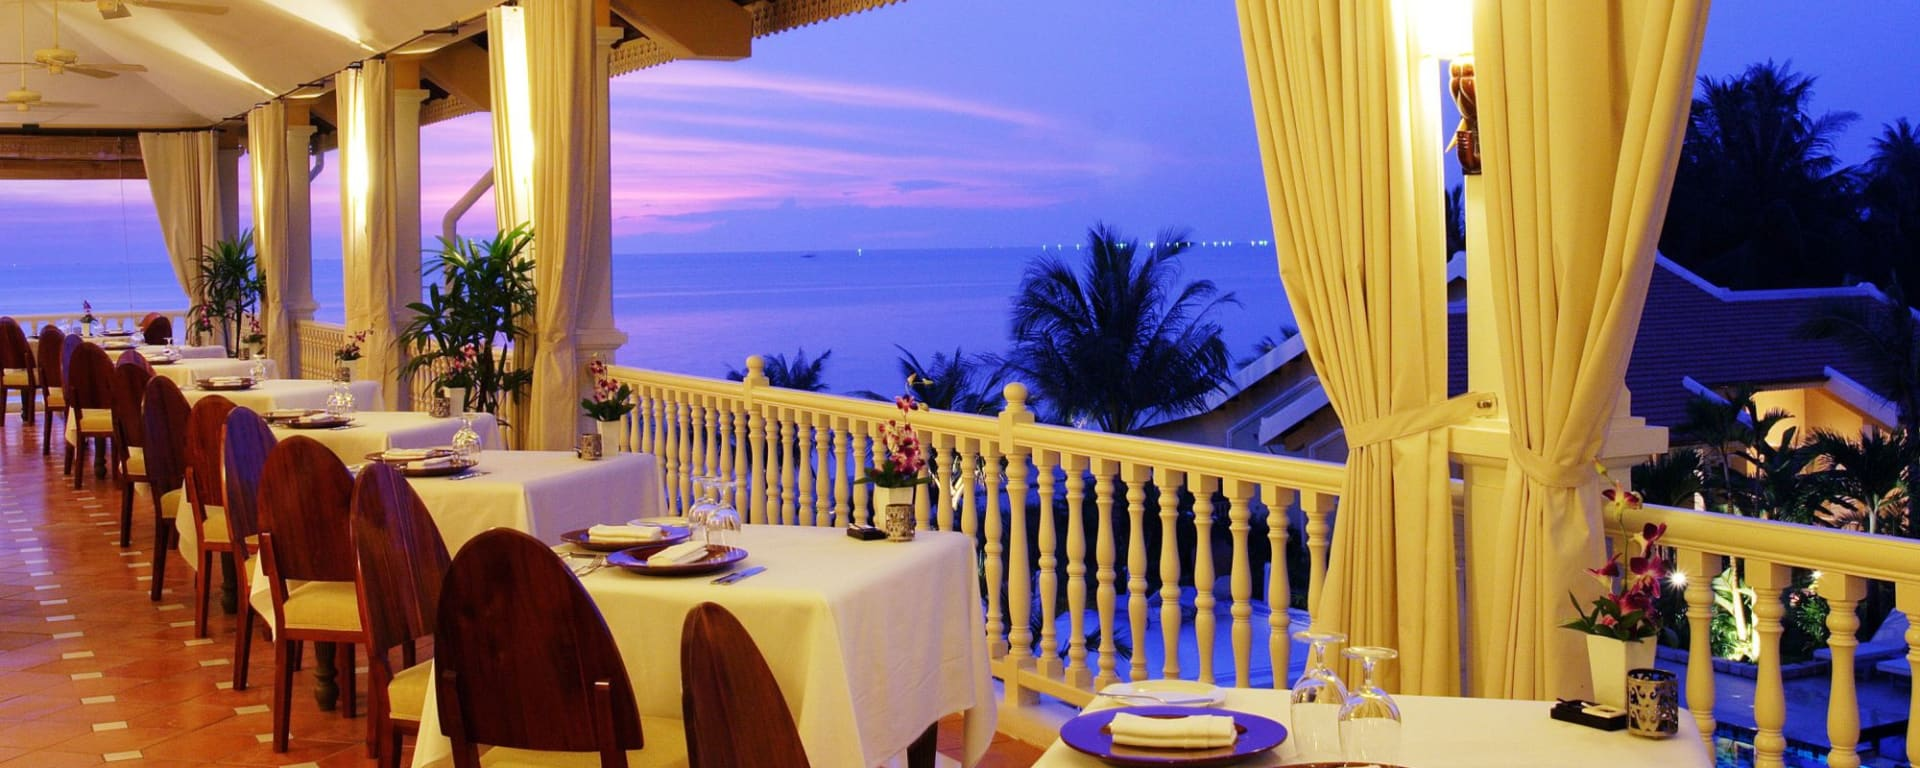 La Veranda Resort in Phu Quoc: Pepper Tree Restaurant